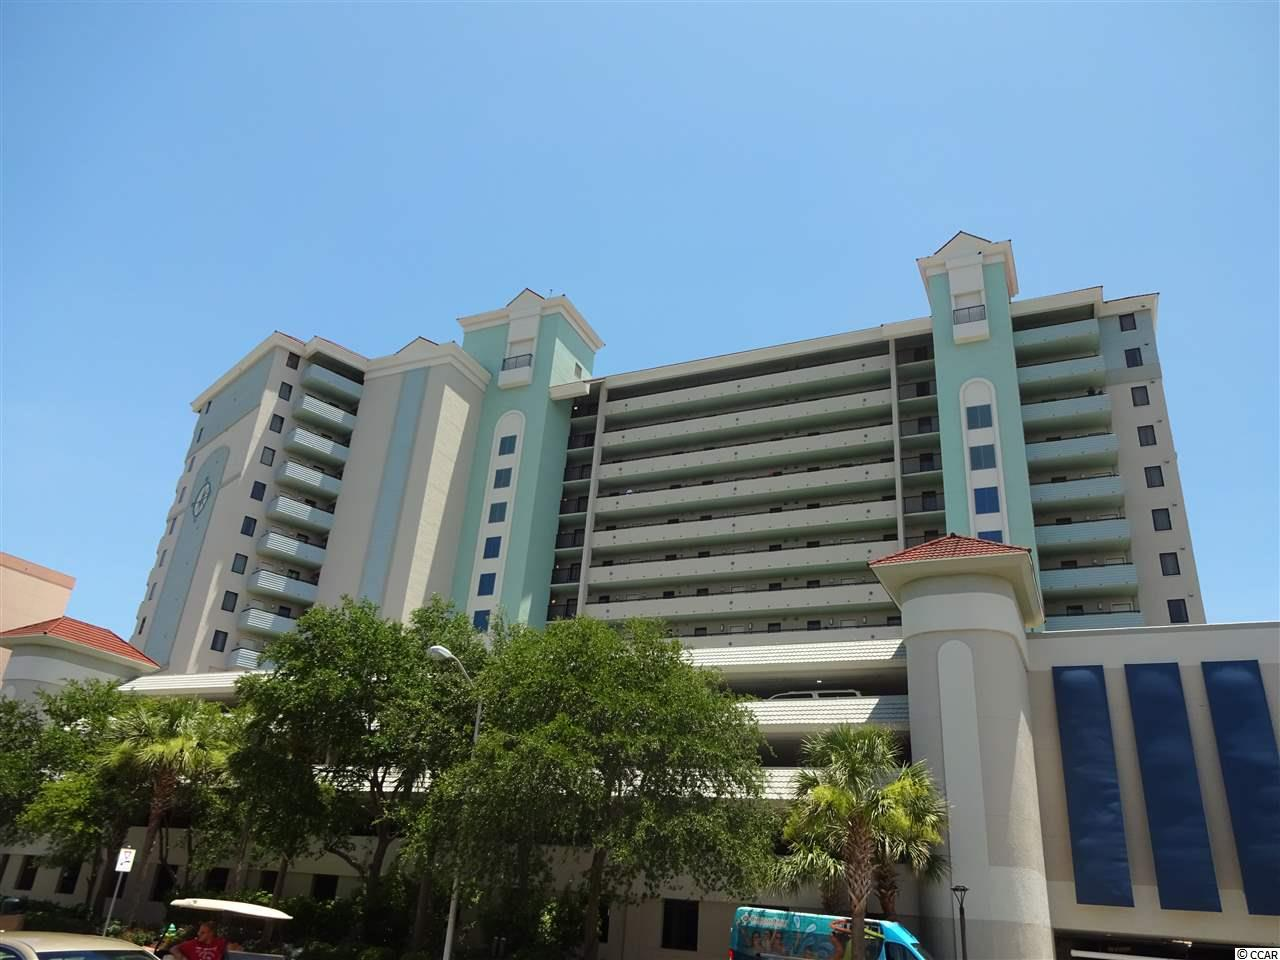 Ocean View Condo in Compass Cove North Tower : Myrtle Beach South Carolina